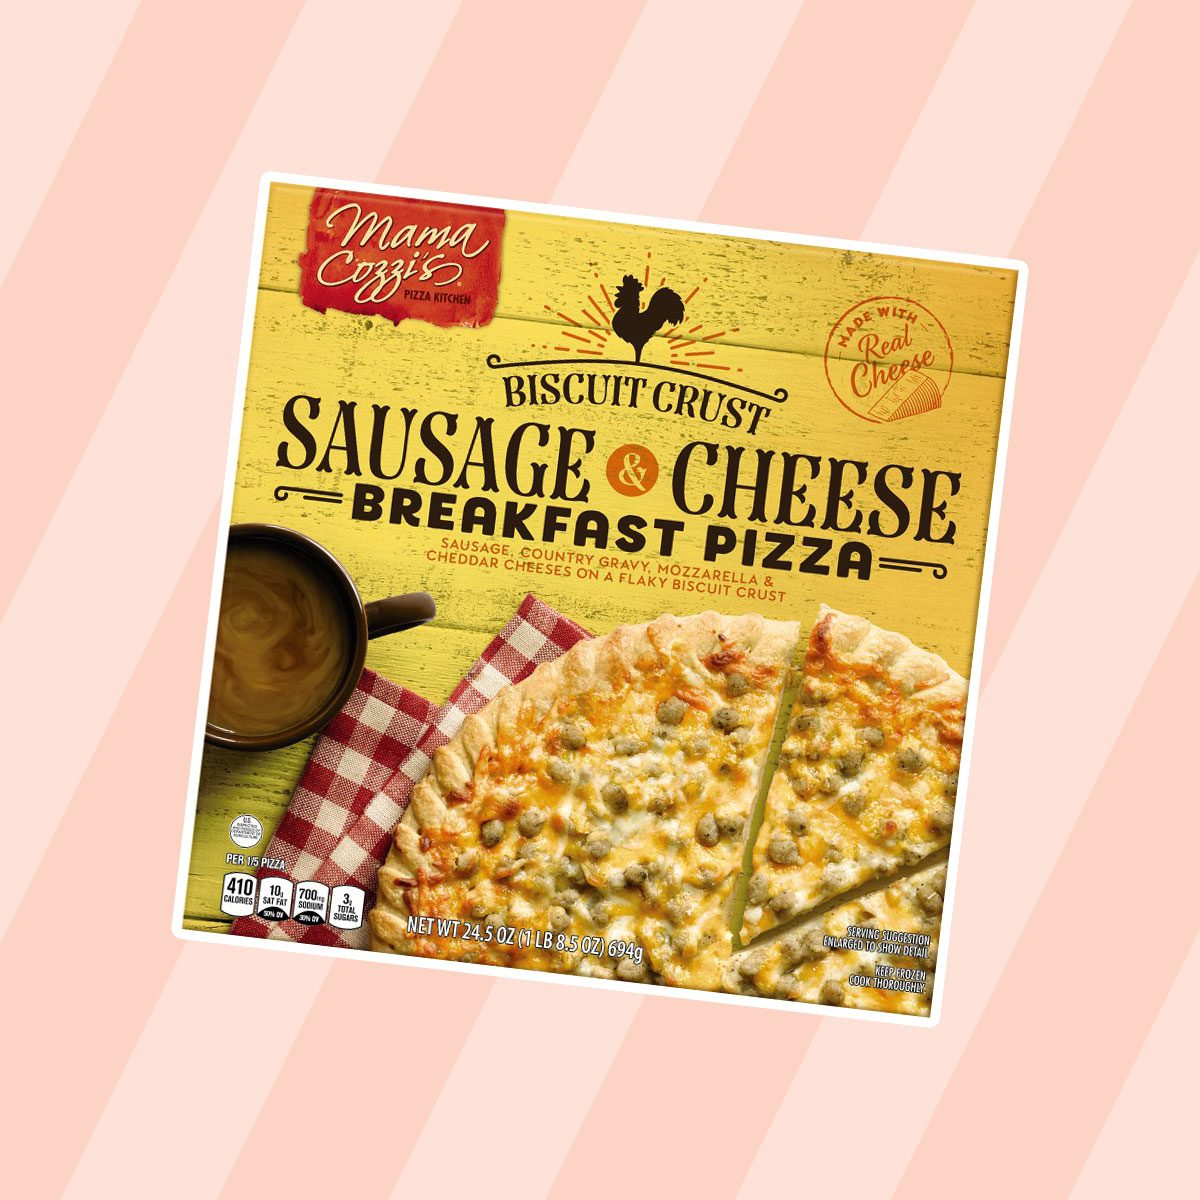 Sausage and Cheese Breakfast Pizza